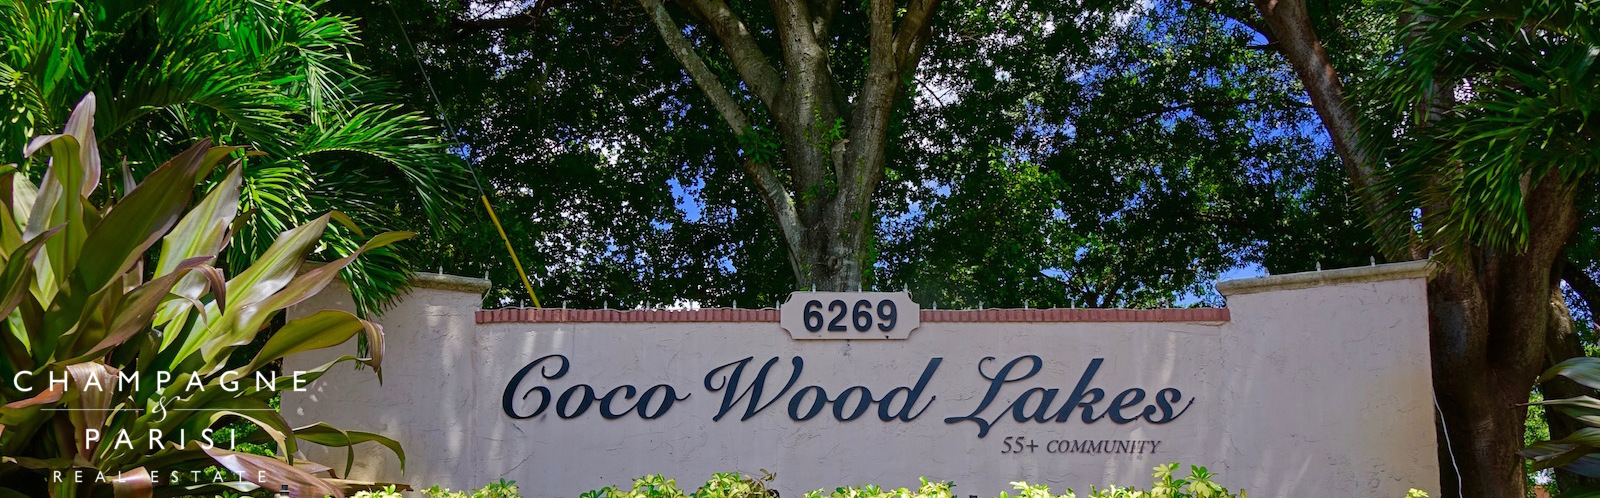 coco wood lakes homes for sale